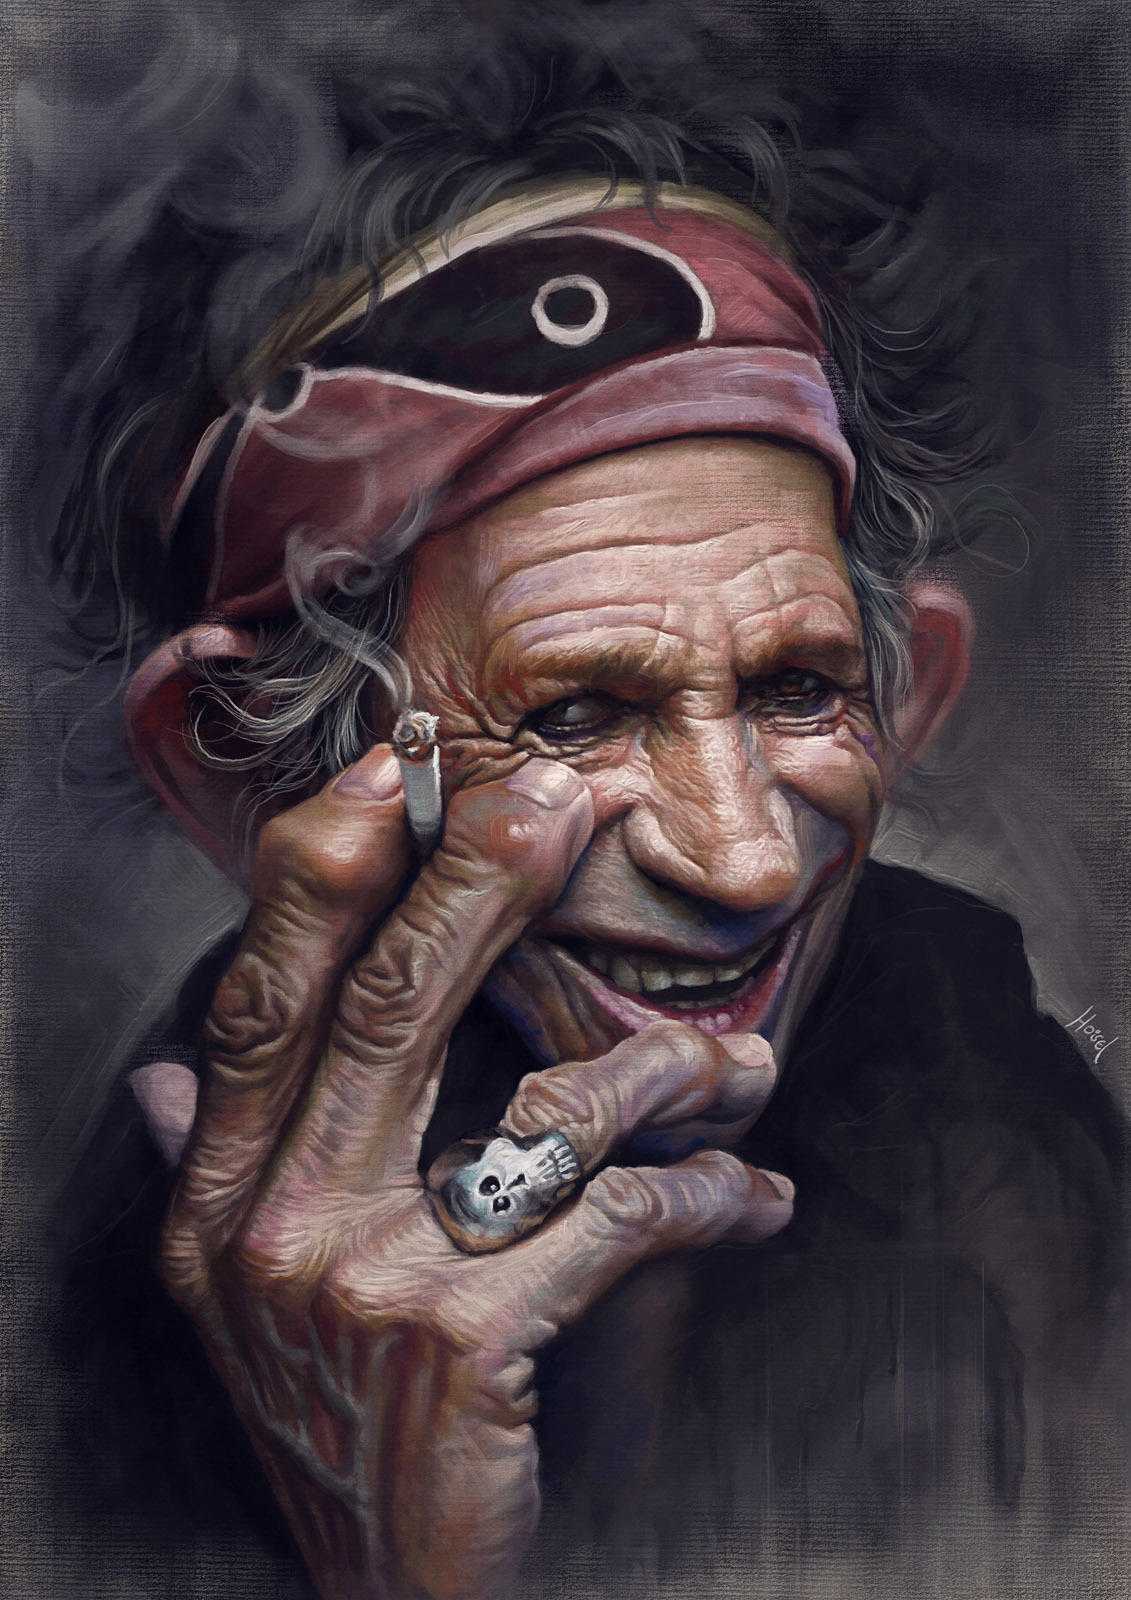 Tiagohoisel keith richards 1 bf4329cc v72o